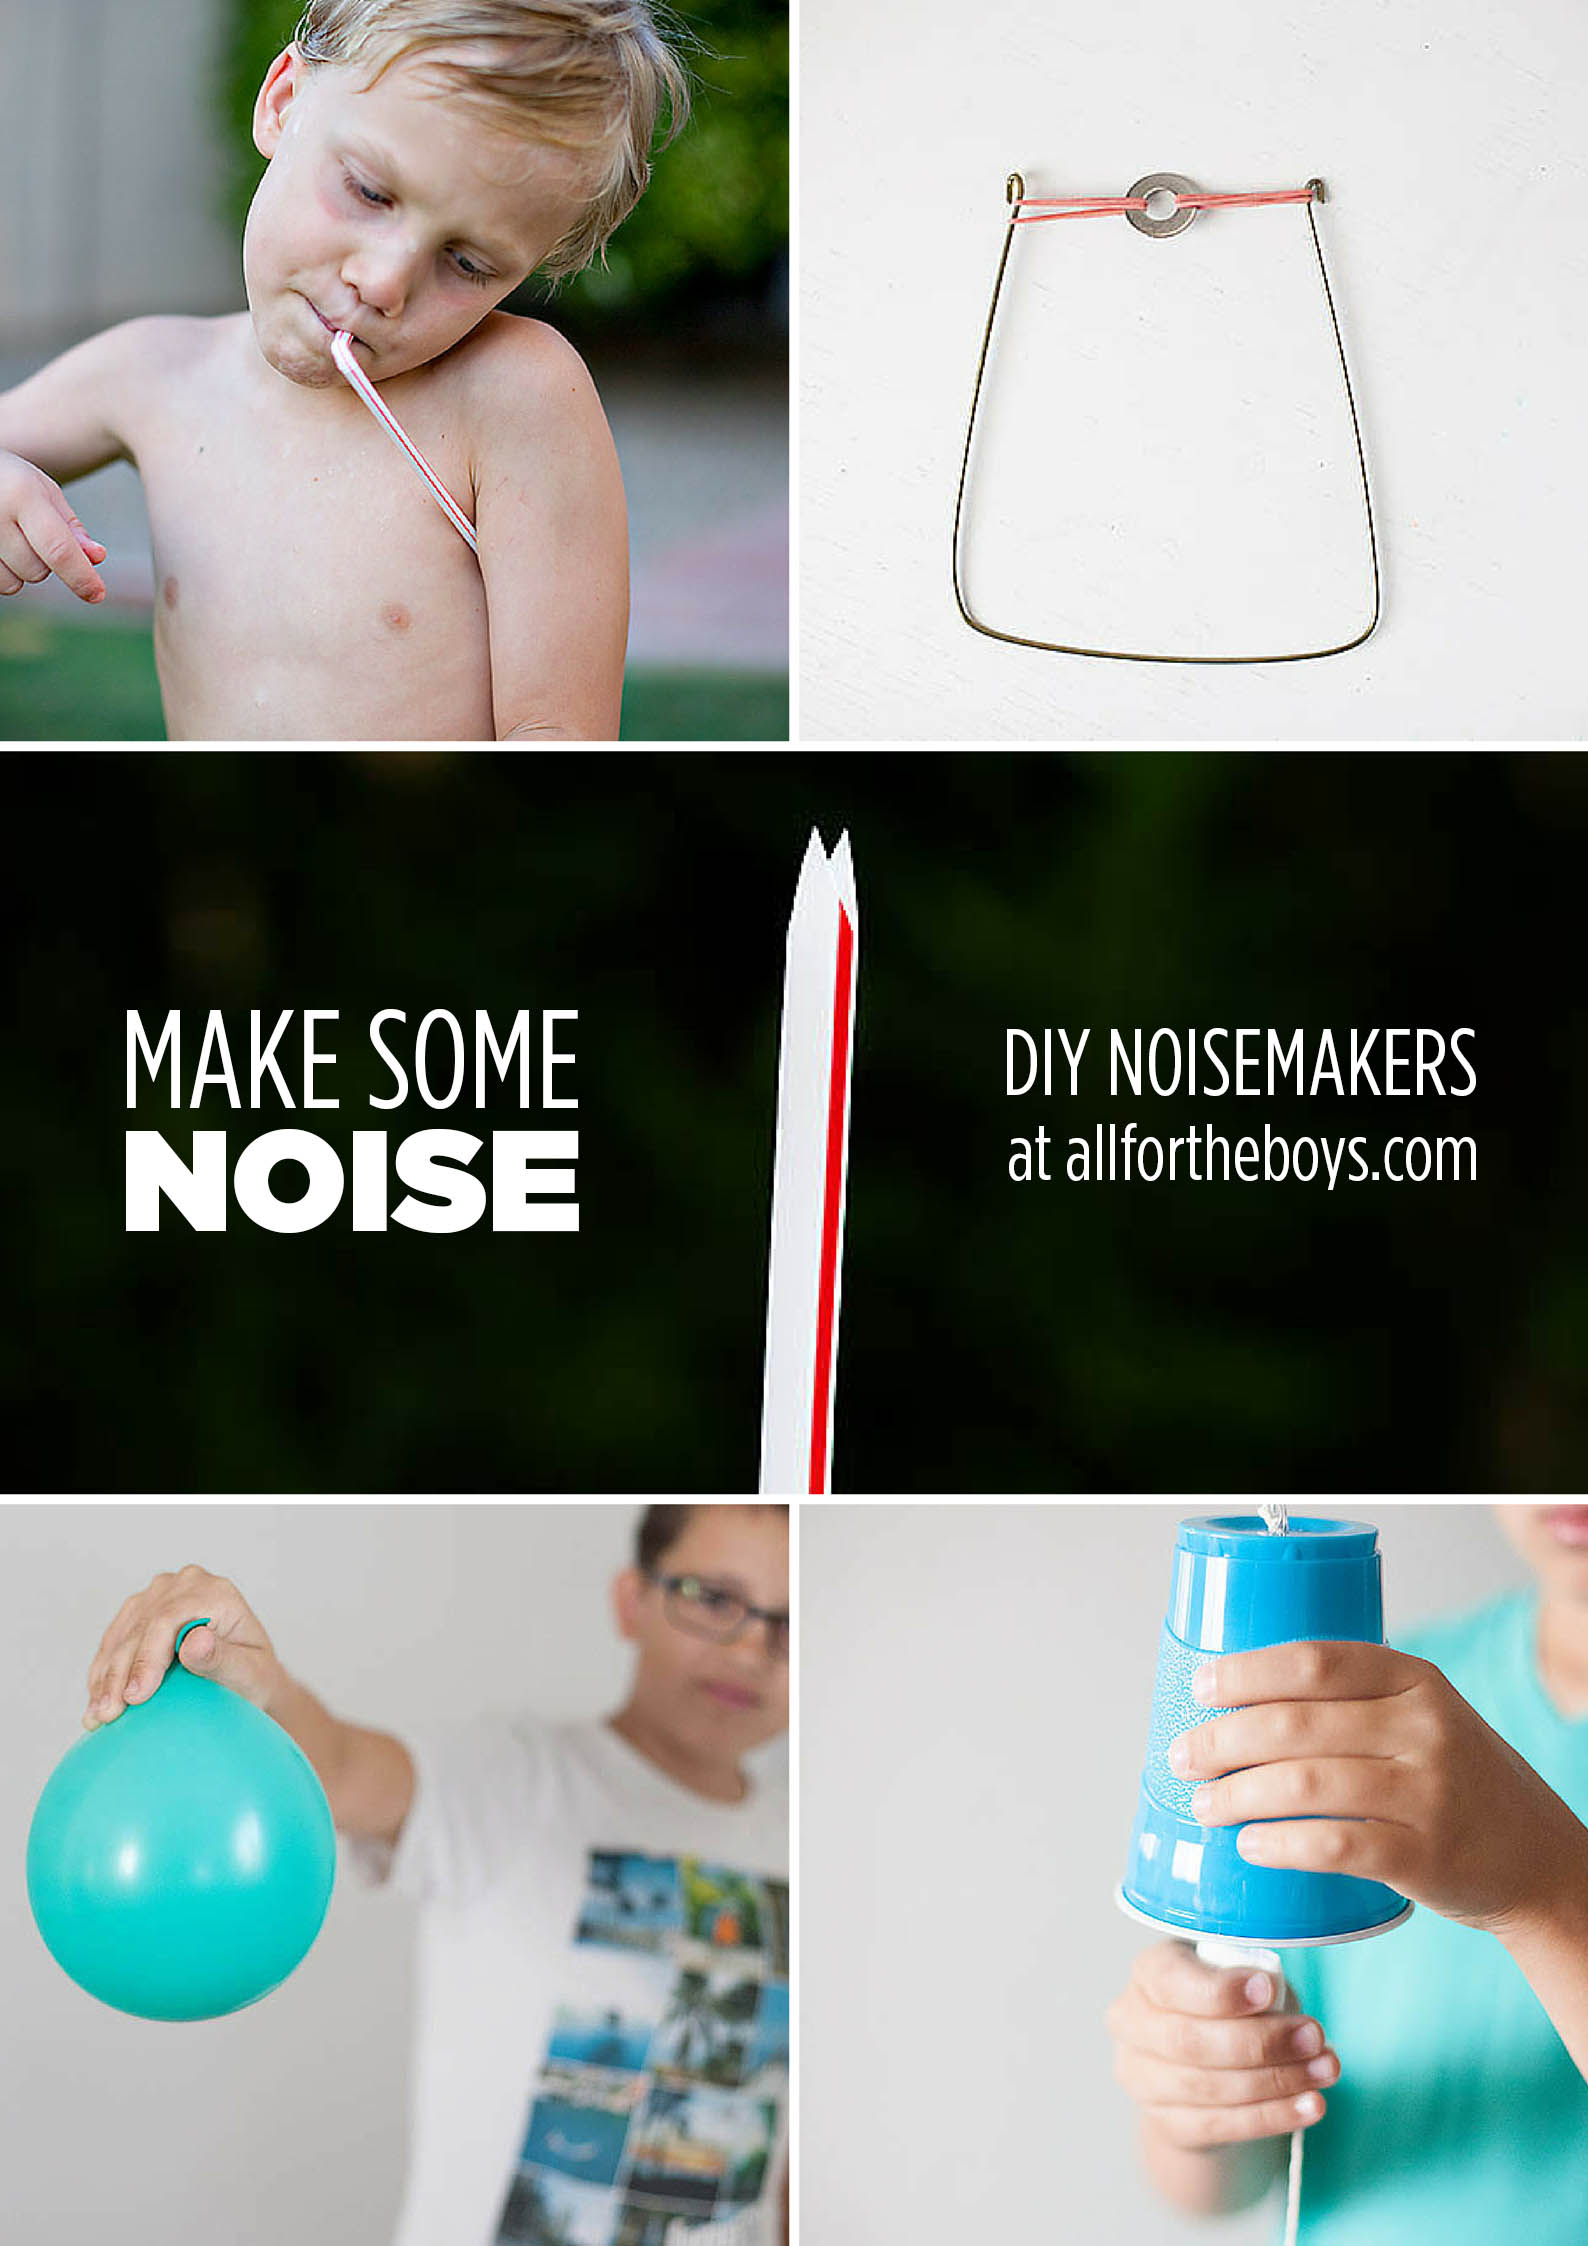 DIY noisemakers you can make at home - from allfortheboys.com